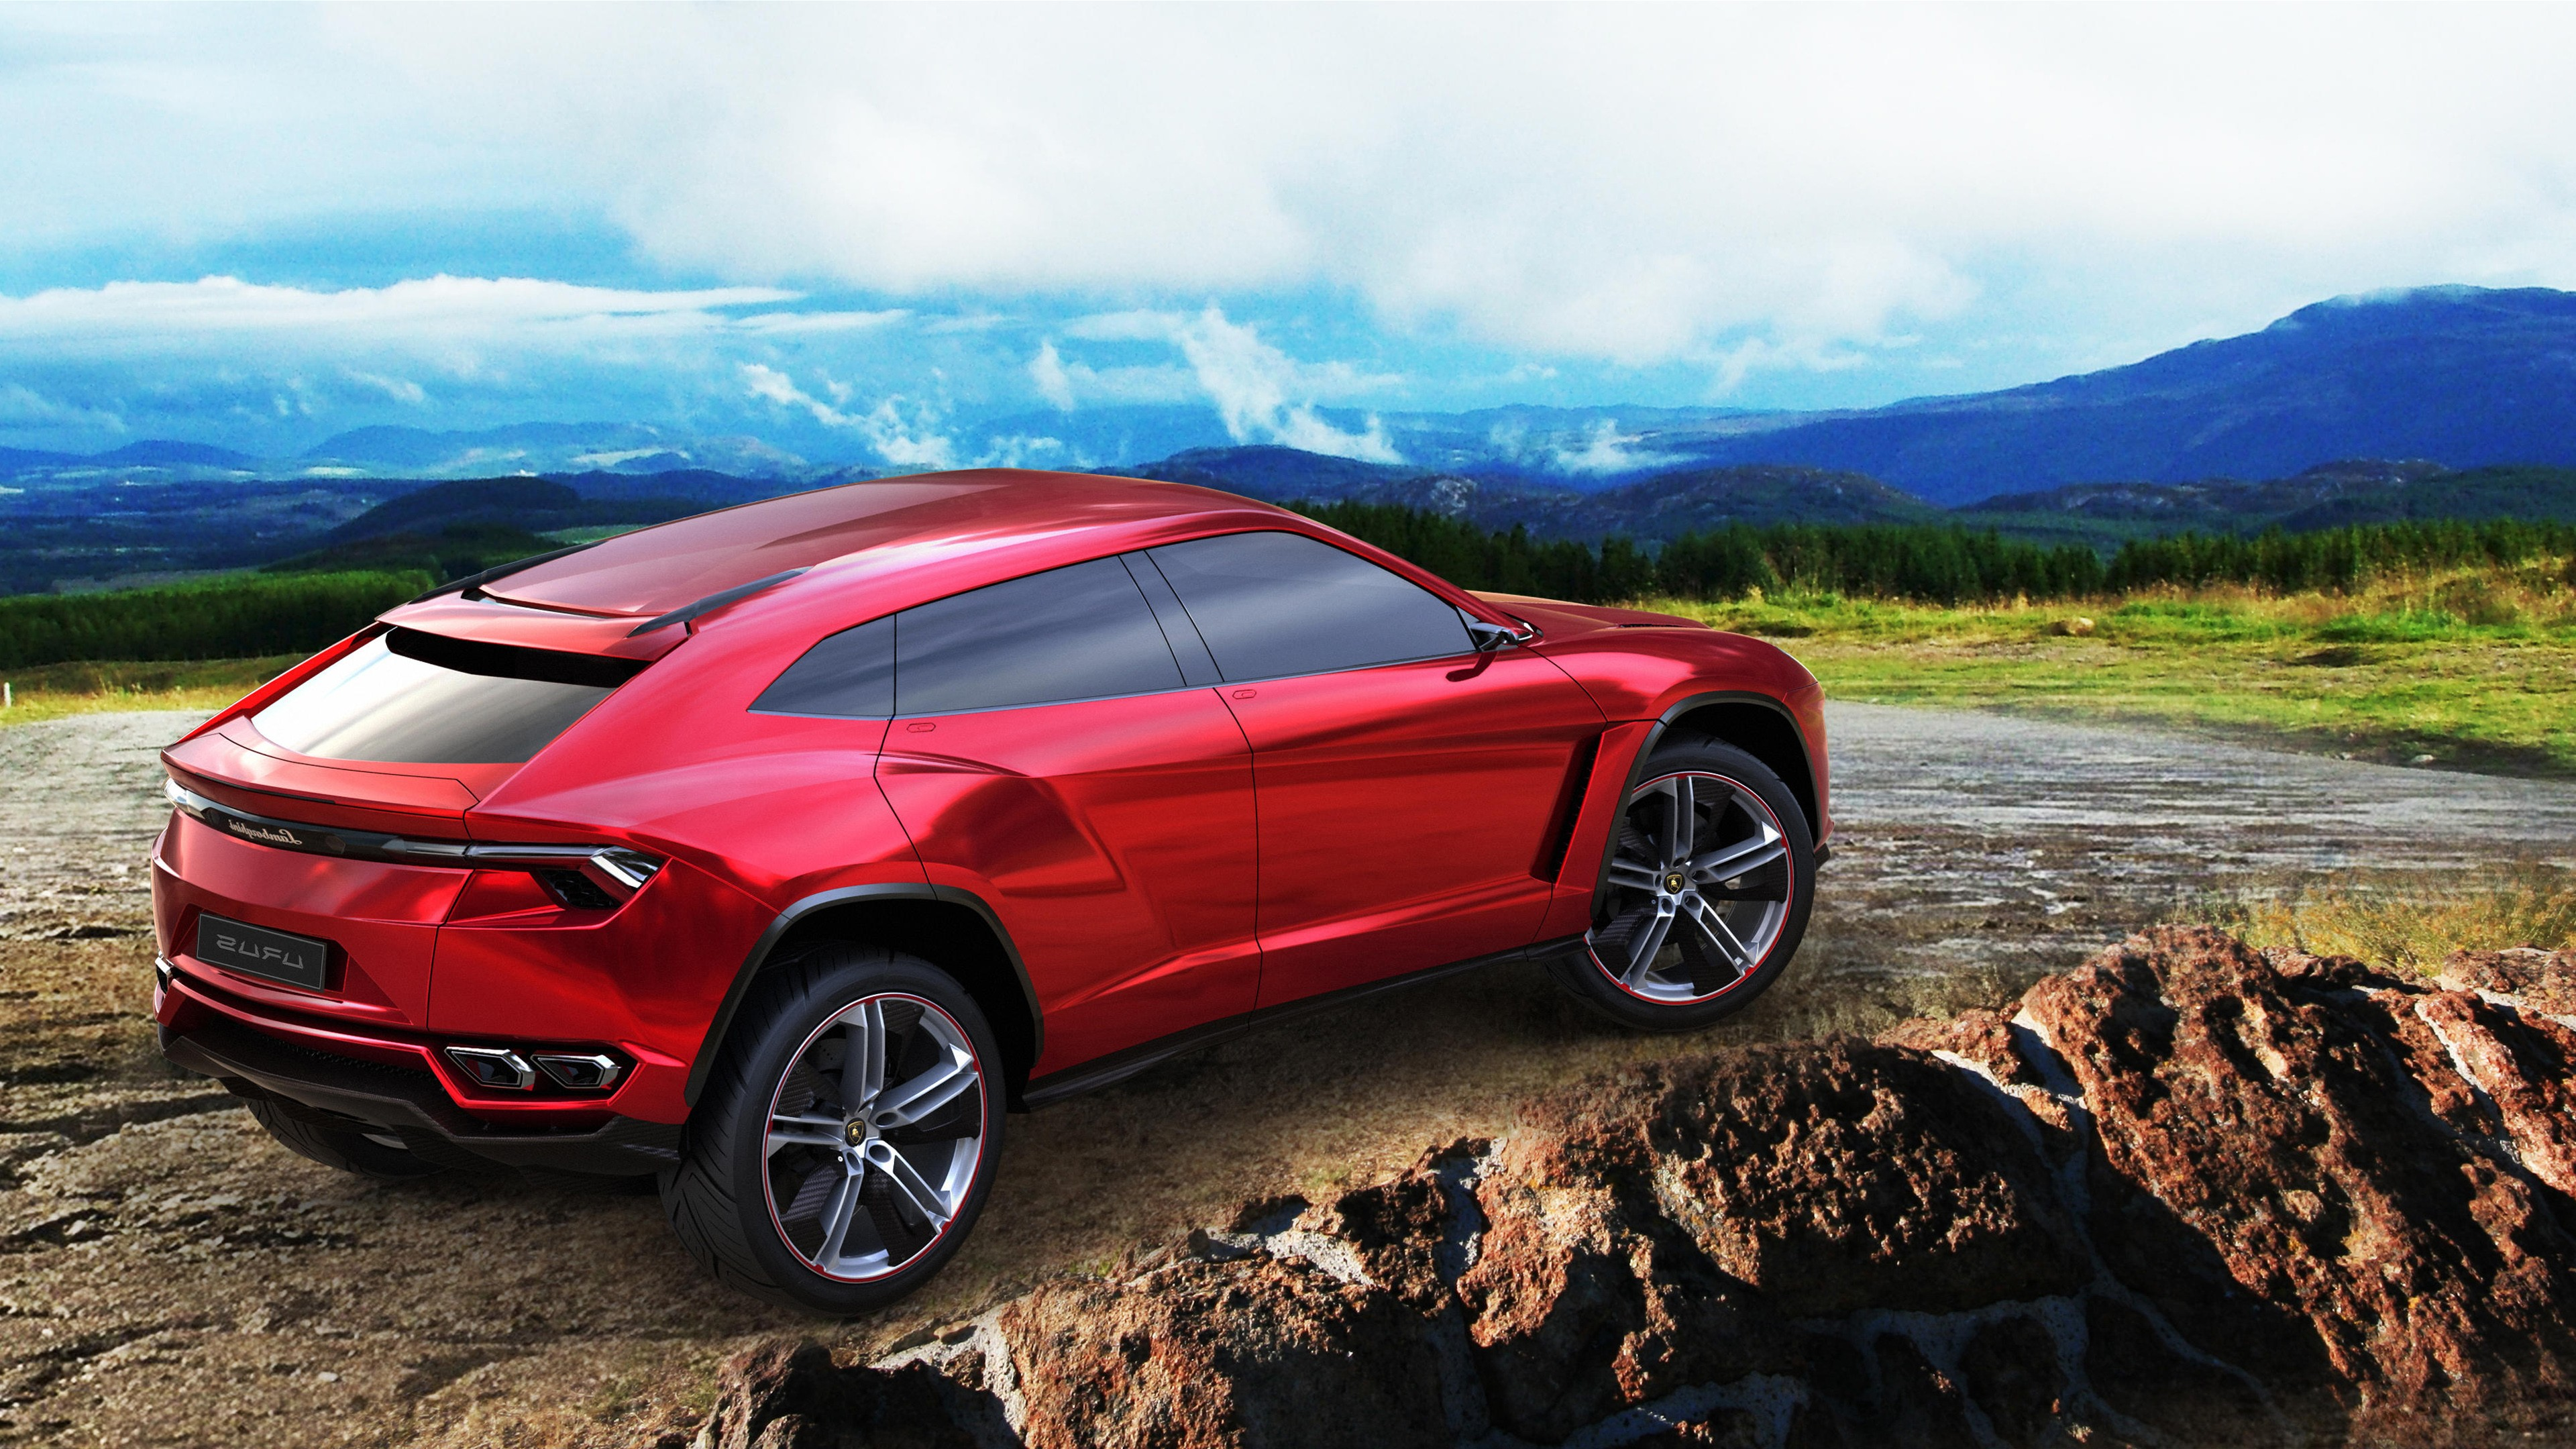 Lamborghini Urus Concept, HD Cars, 4k Wallpapers, Images